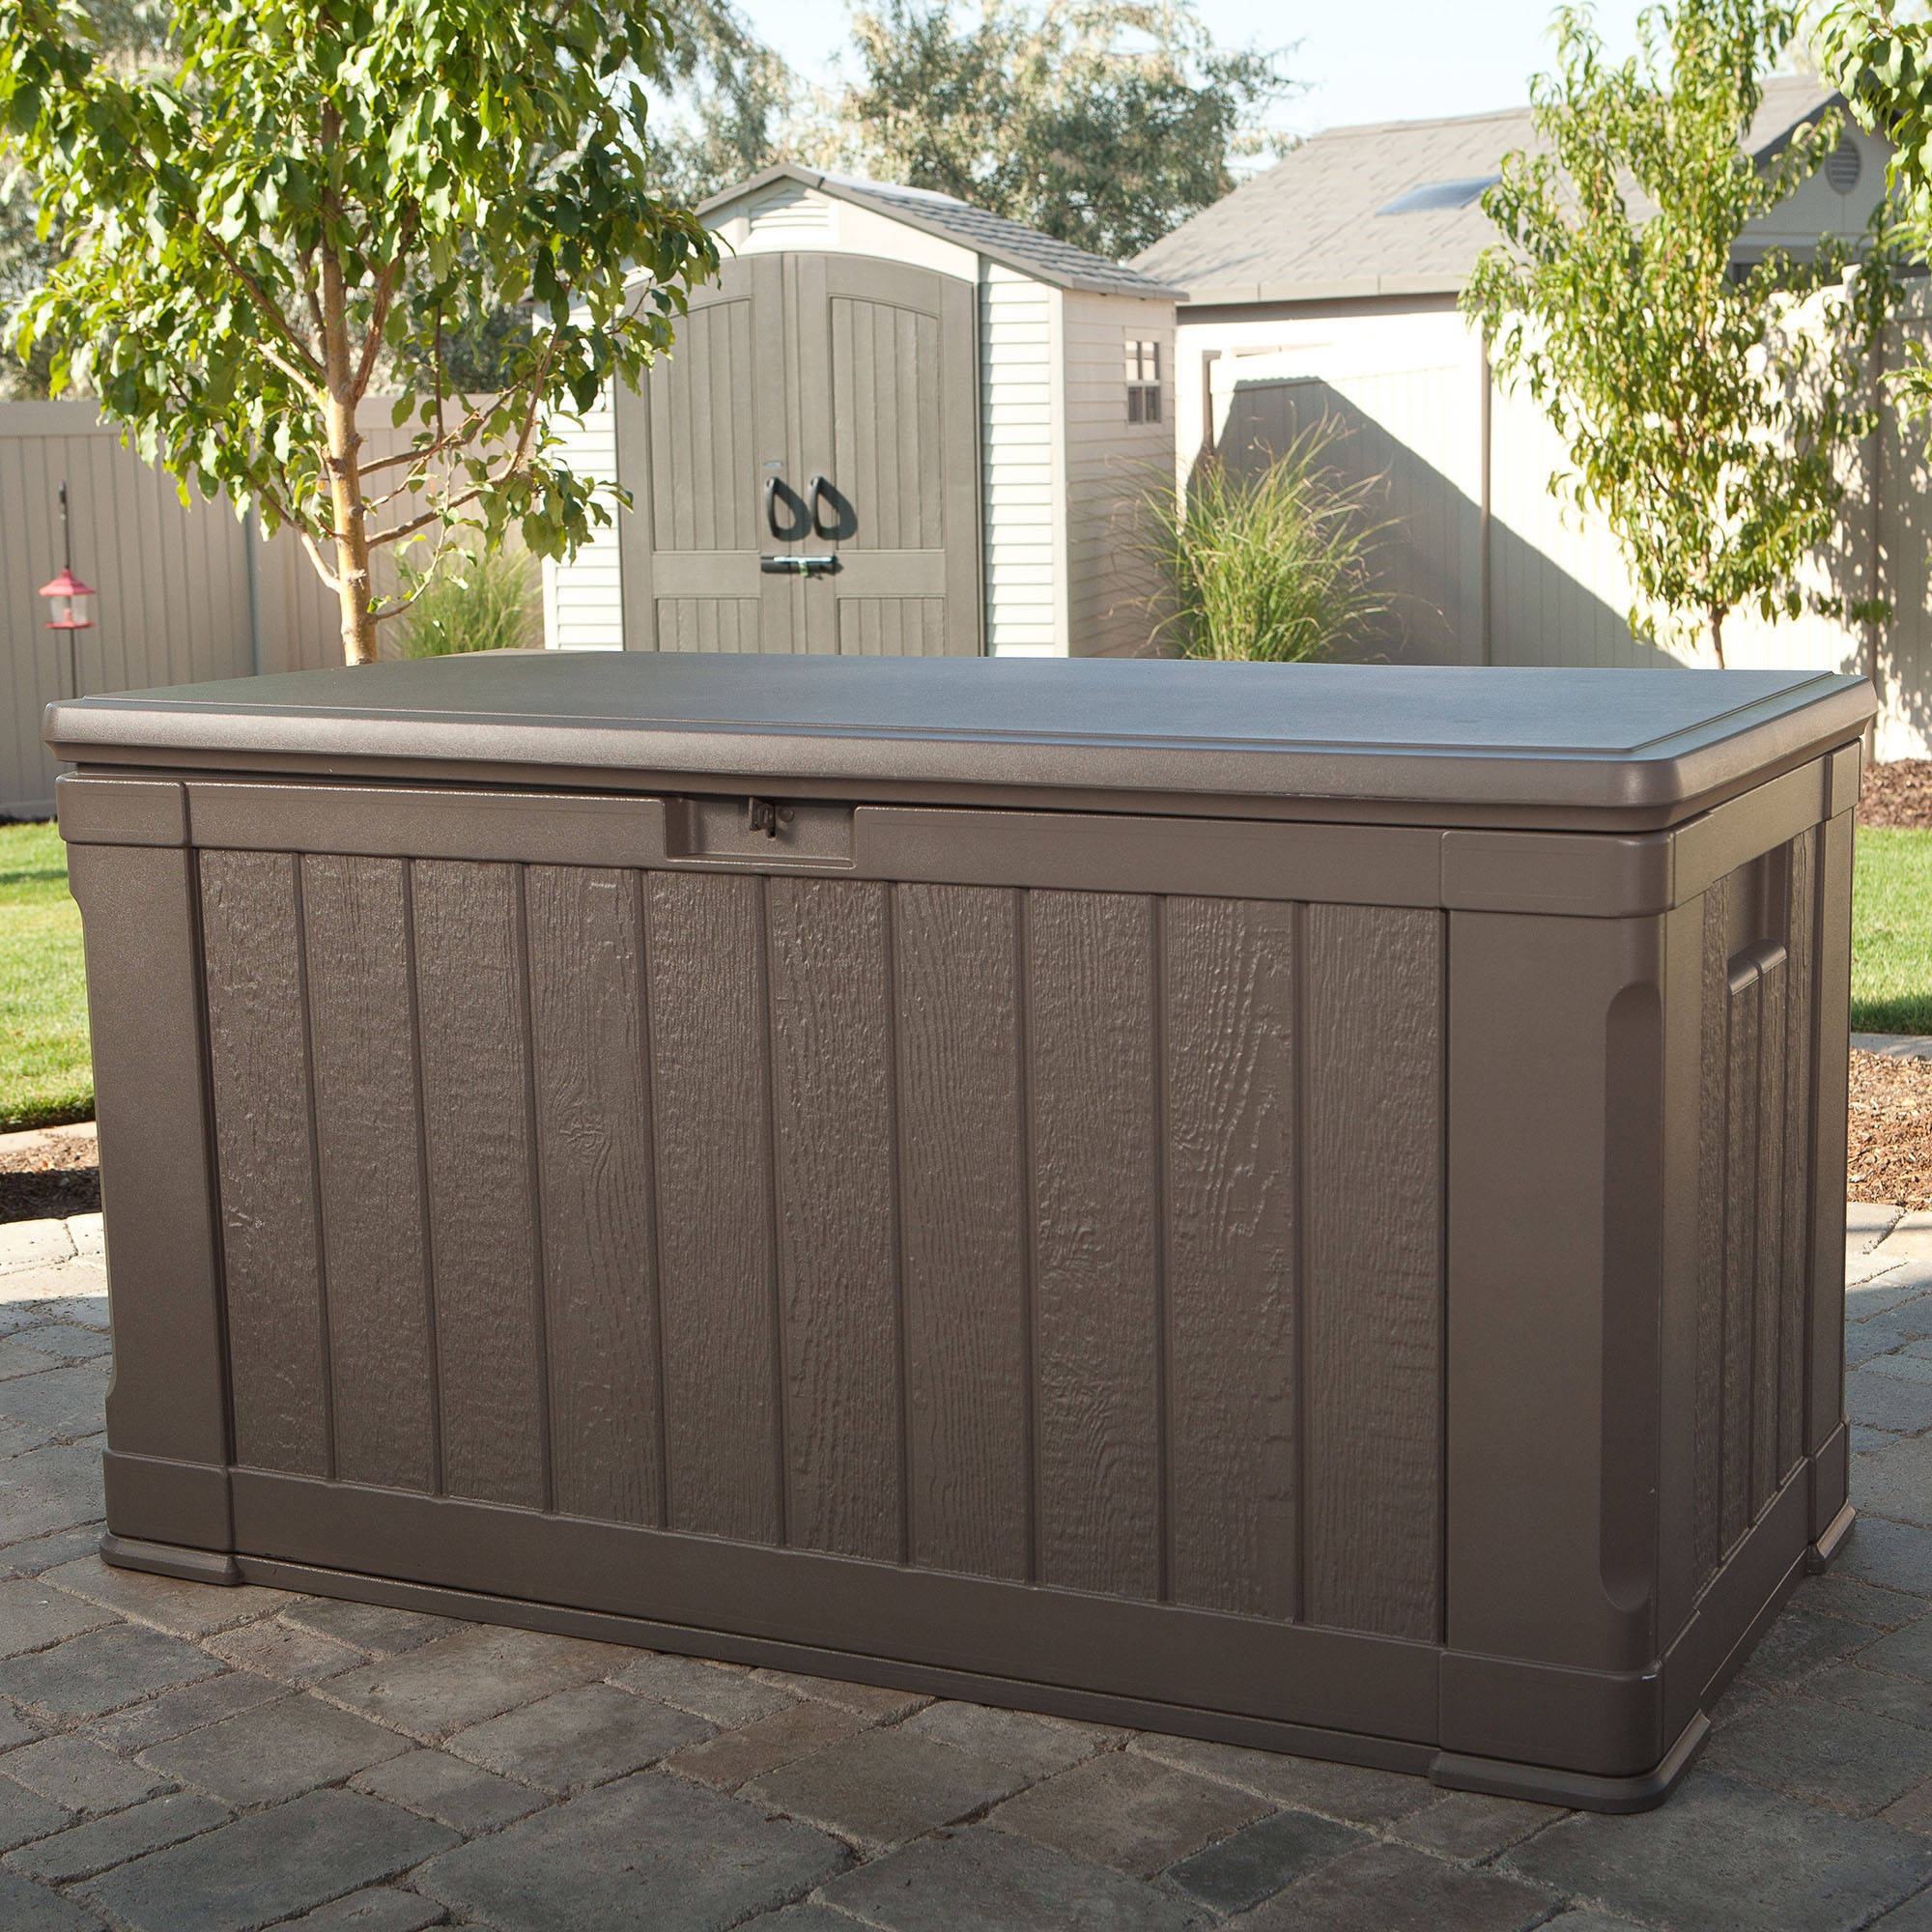 Lifetime Outdoor Storage Box 116 Gallon 60089 Walmart for proportions 2000 X 2000